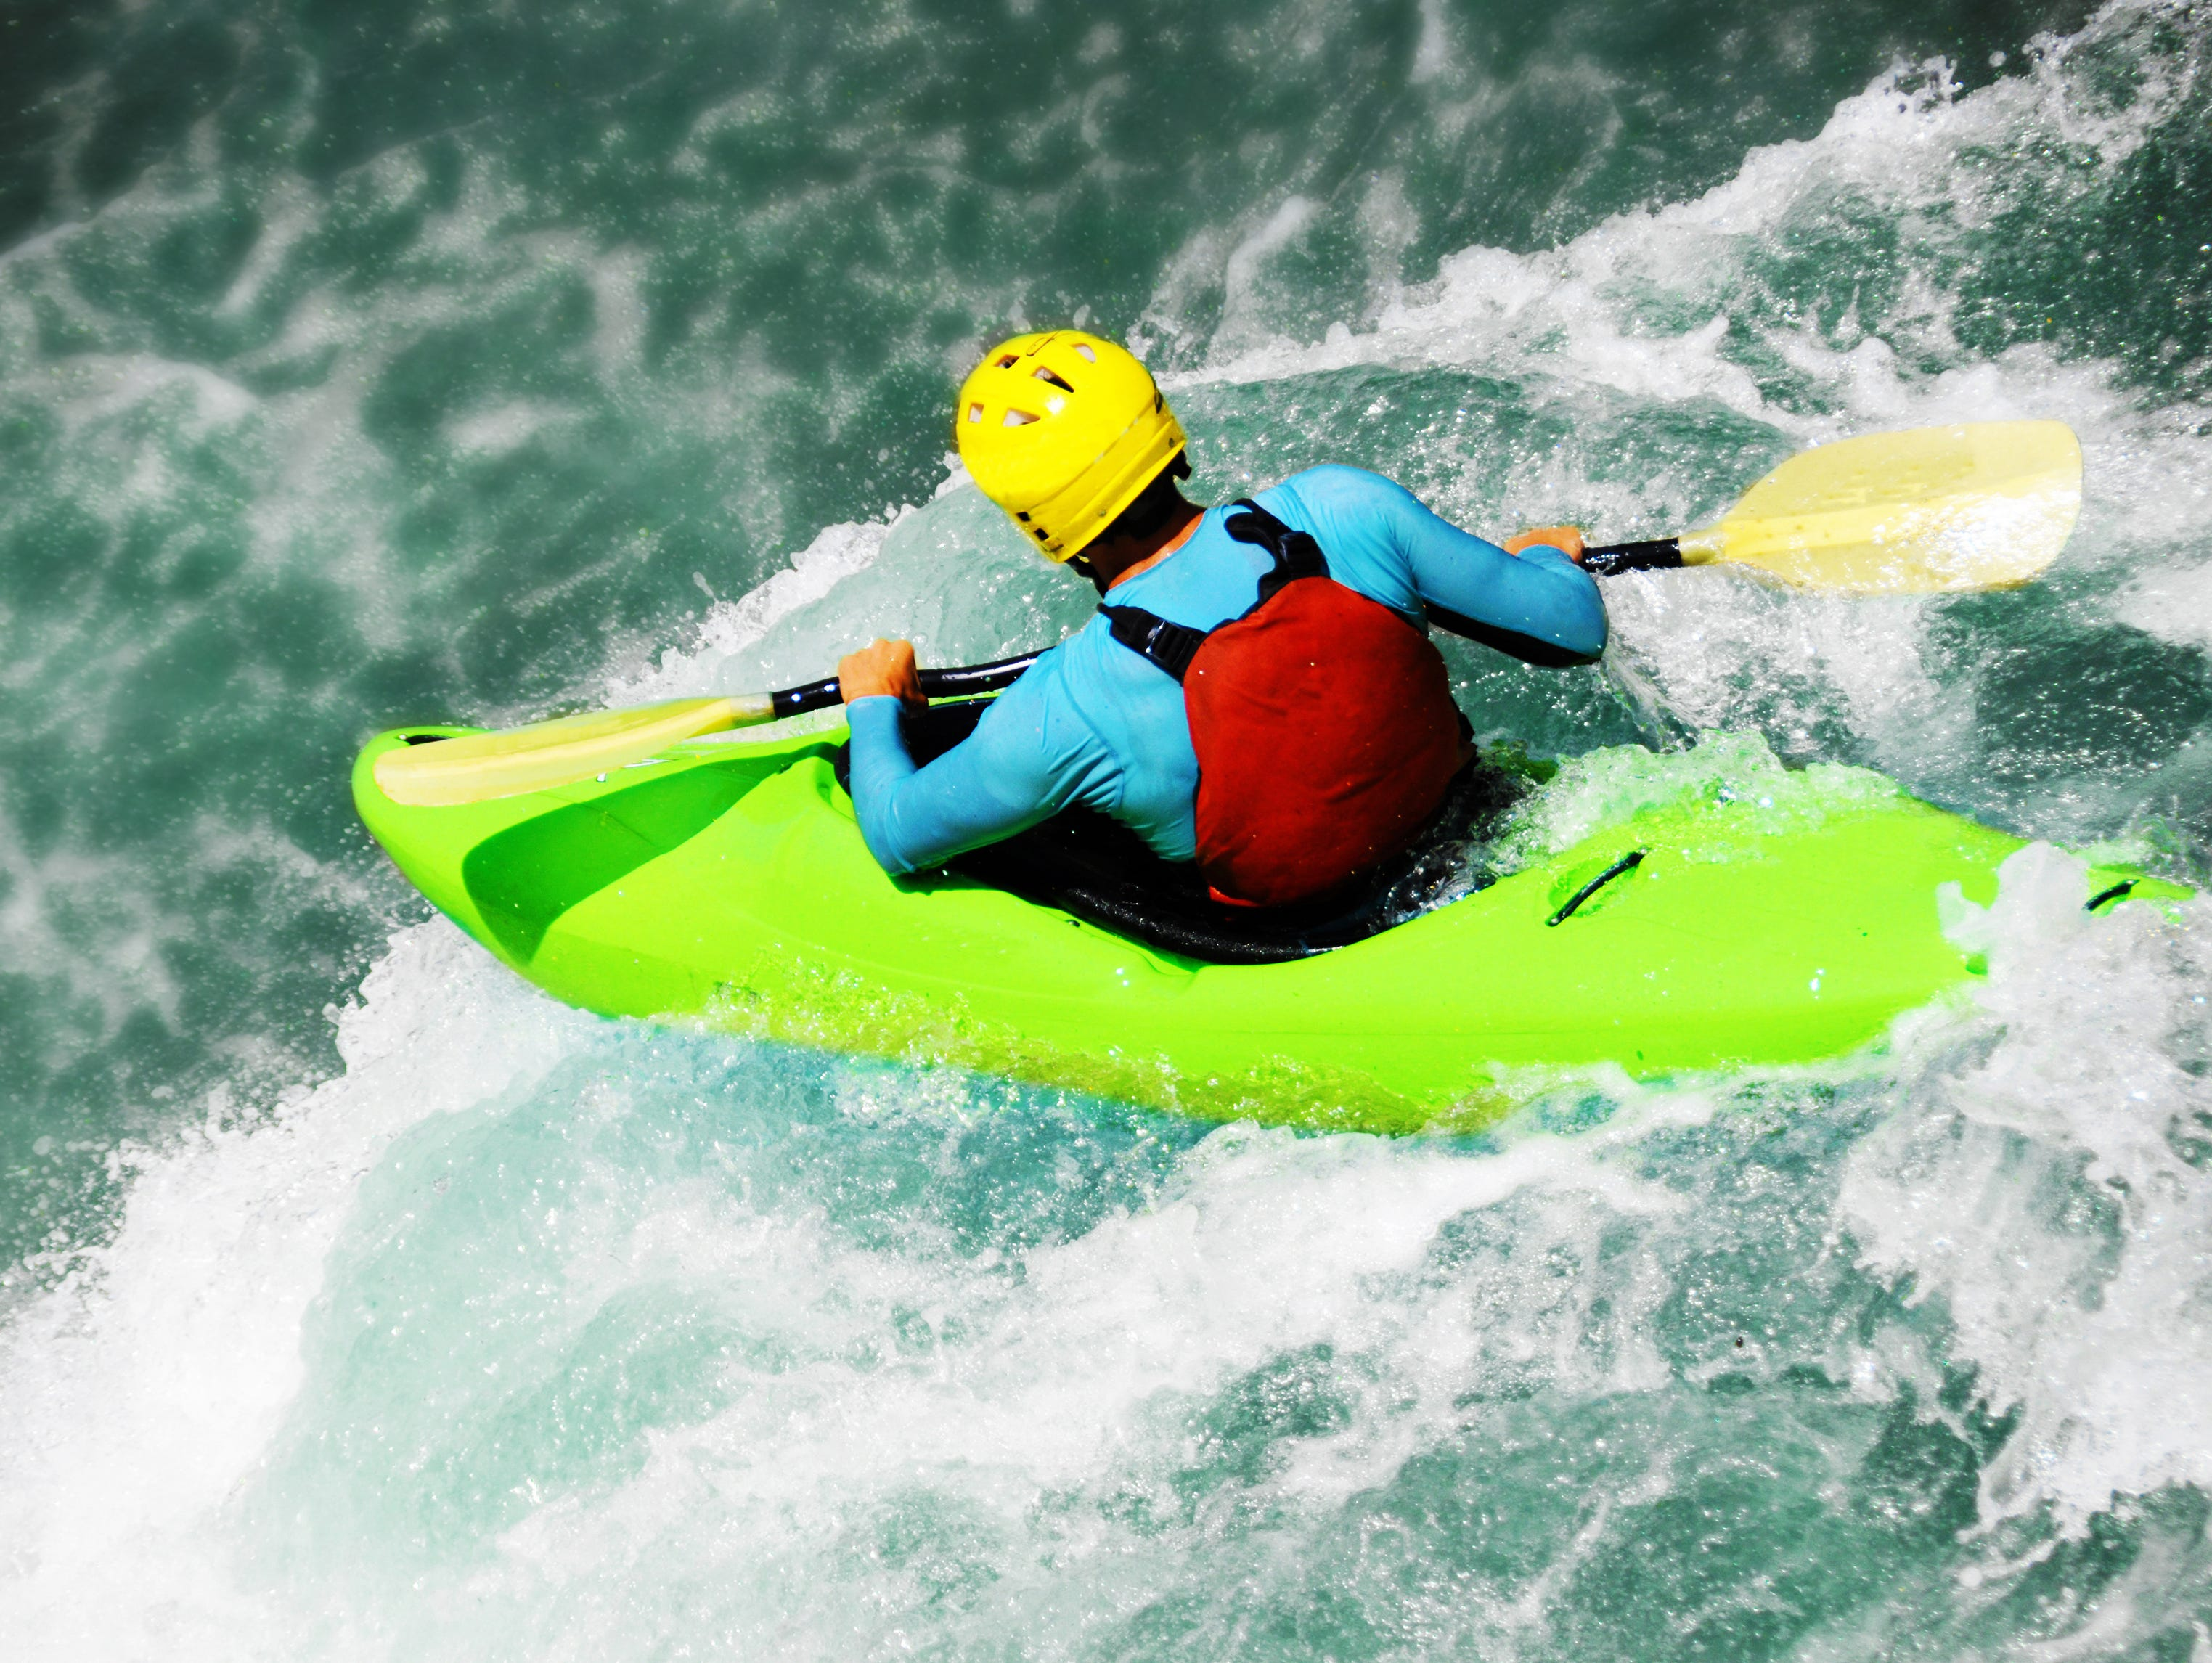 Come by the RGJ Insider booth at this years Reno River Festival on May 13 & 14 and say hi!